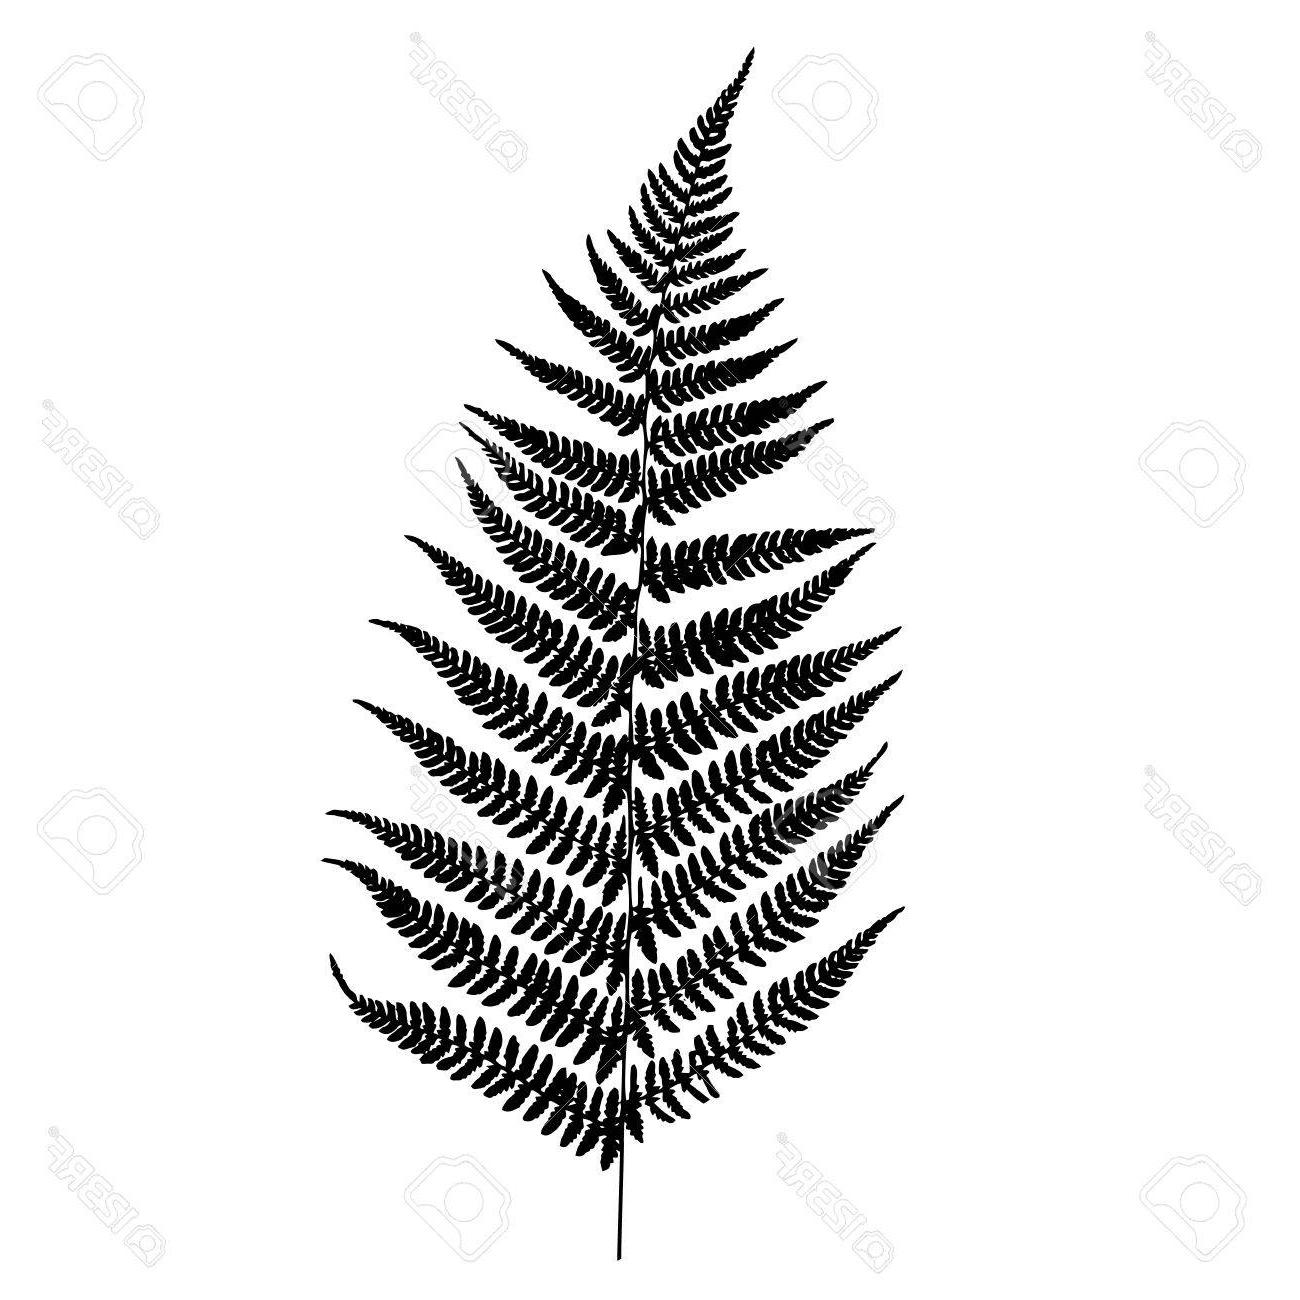 Fern silhouette clipart stock HD Fern Silhouette Vector Design » Free Vector Art, Images, Graphics ... stock